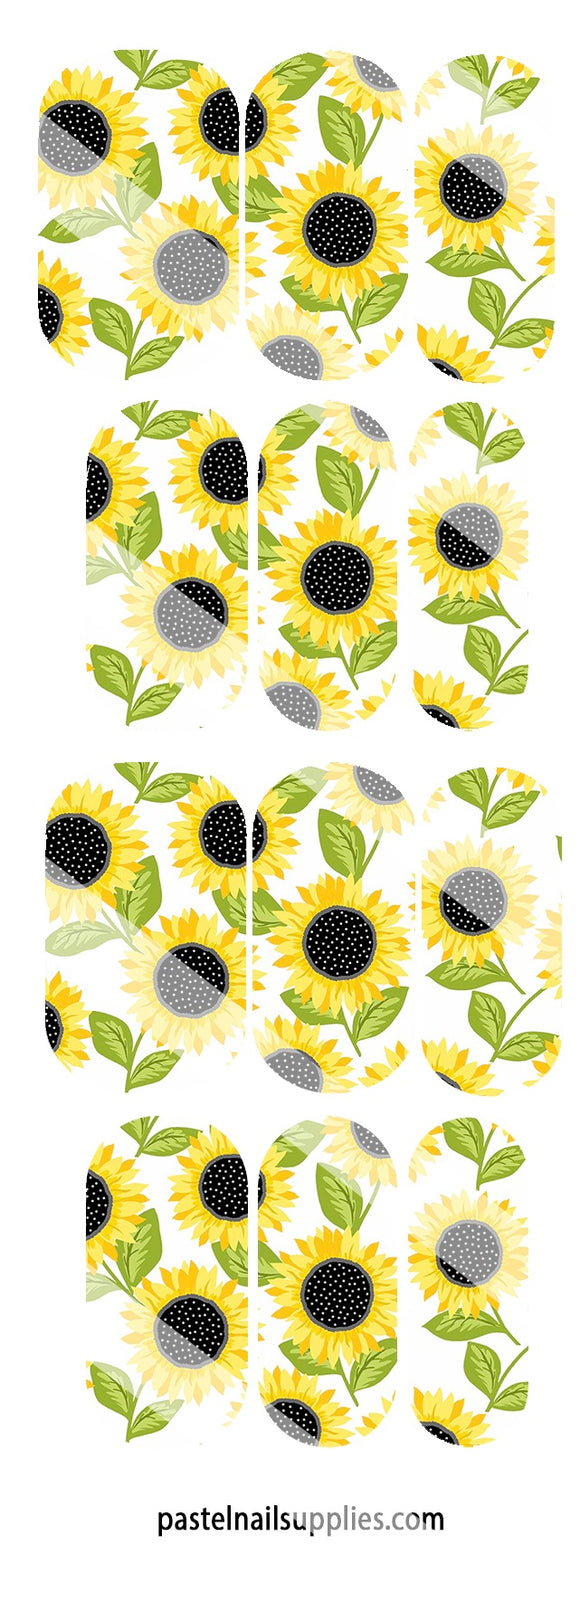 Sunflowers Style 2